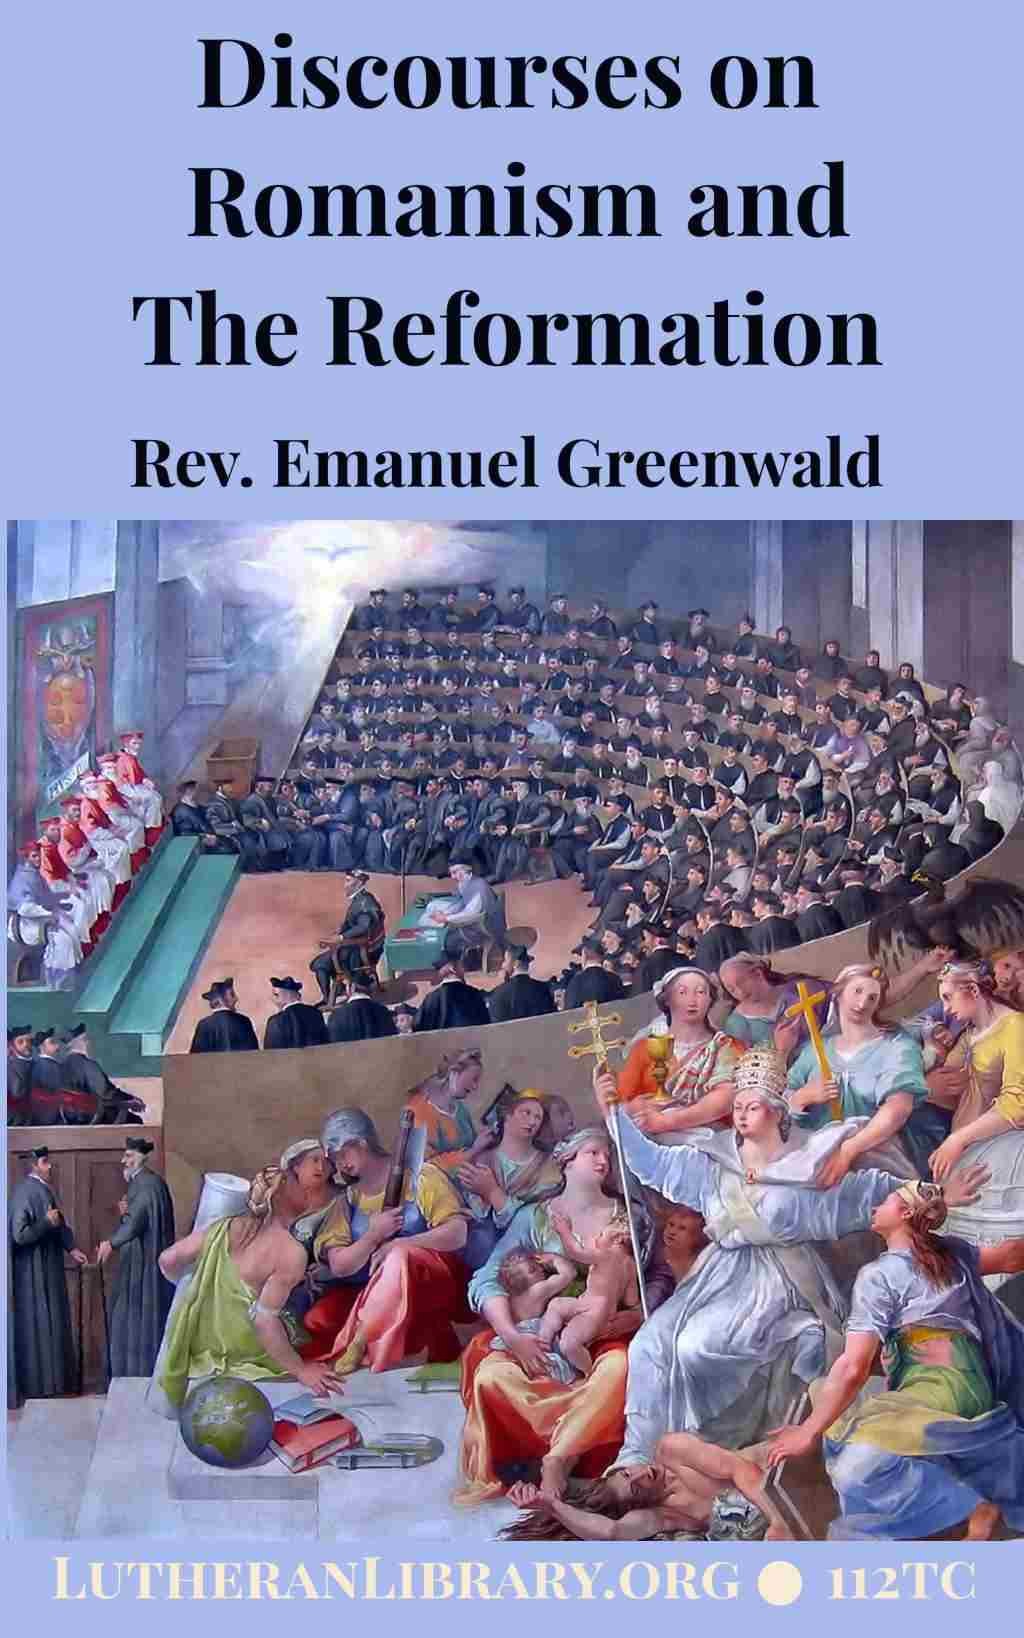 Discourses on Romanism and the Reformation by Emanuel Greenwald